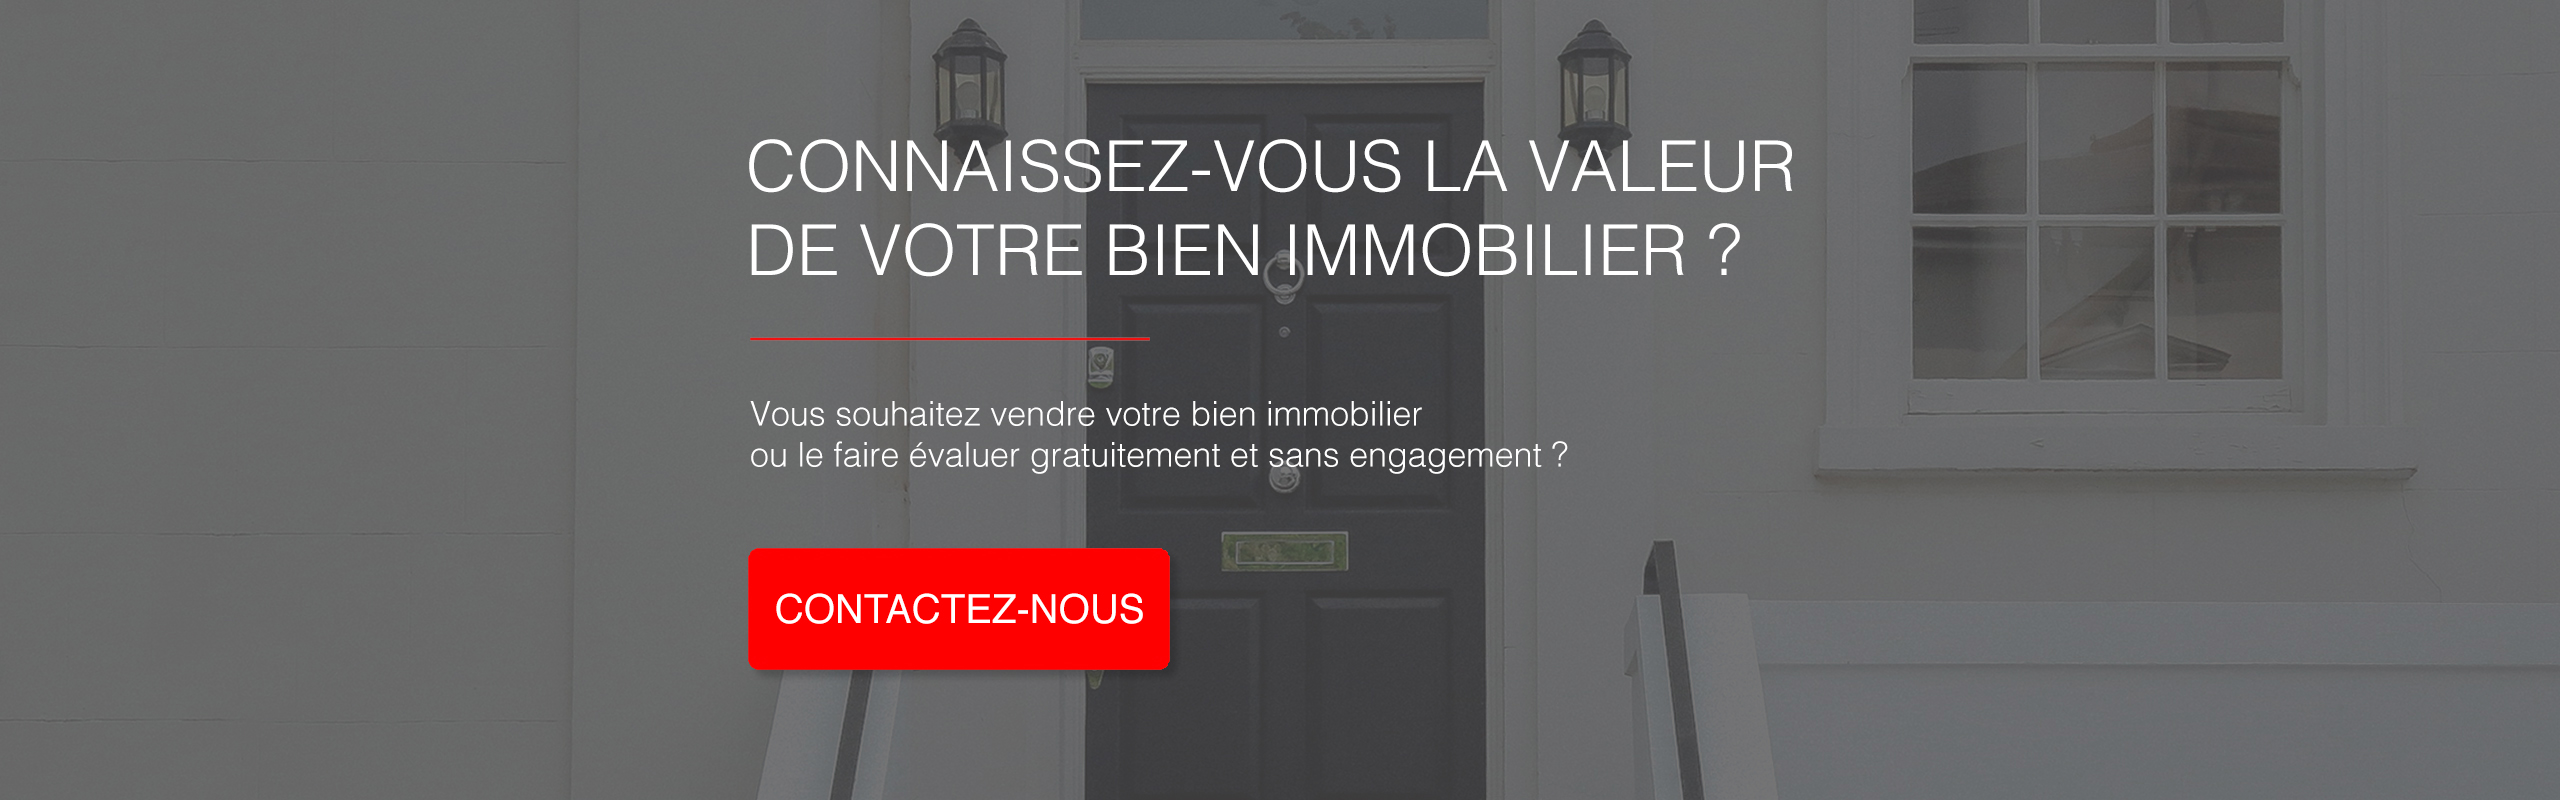 Bruxelles - Evaluation gratuite immobilier BEL